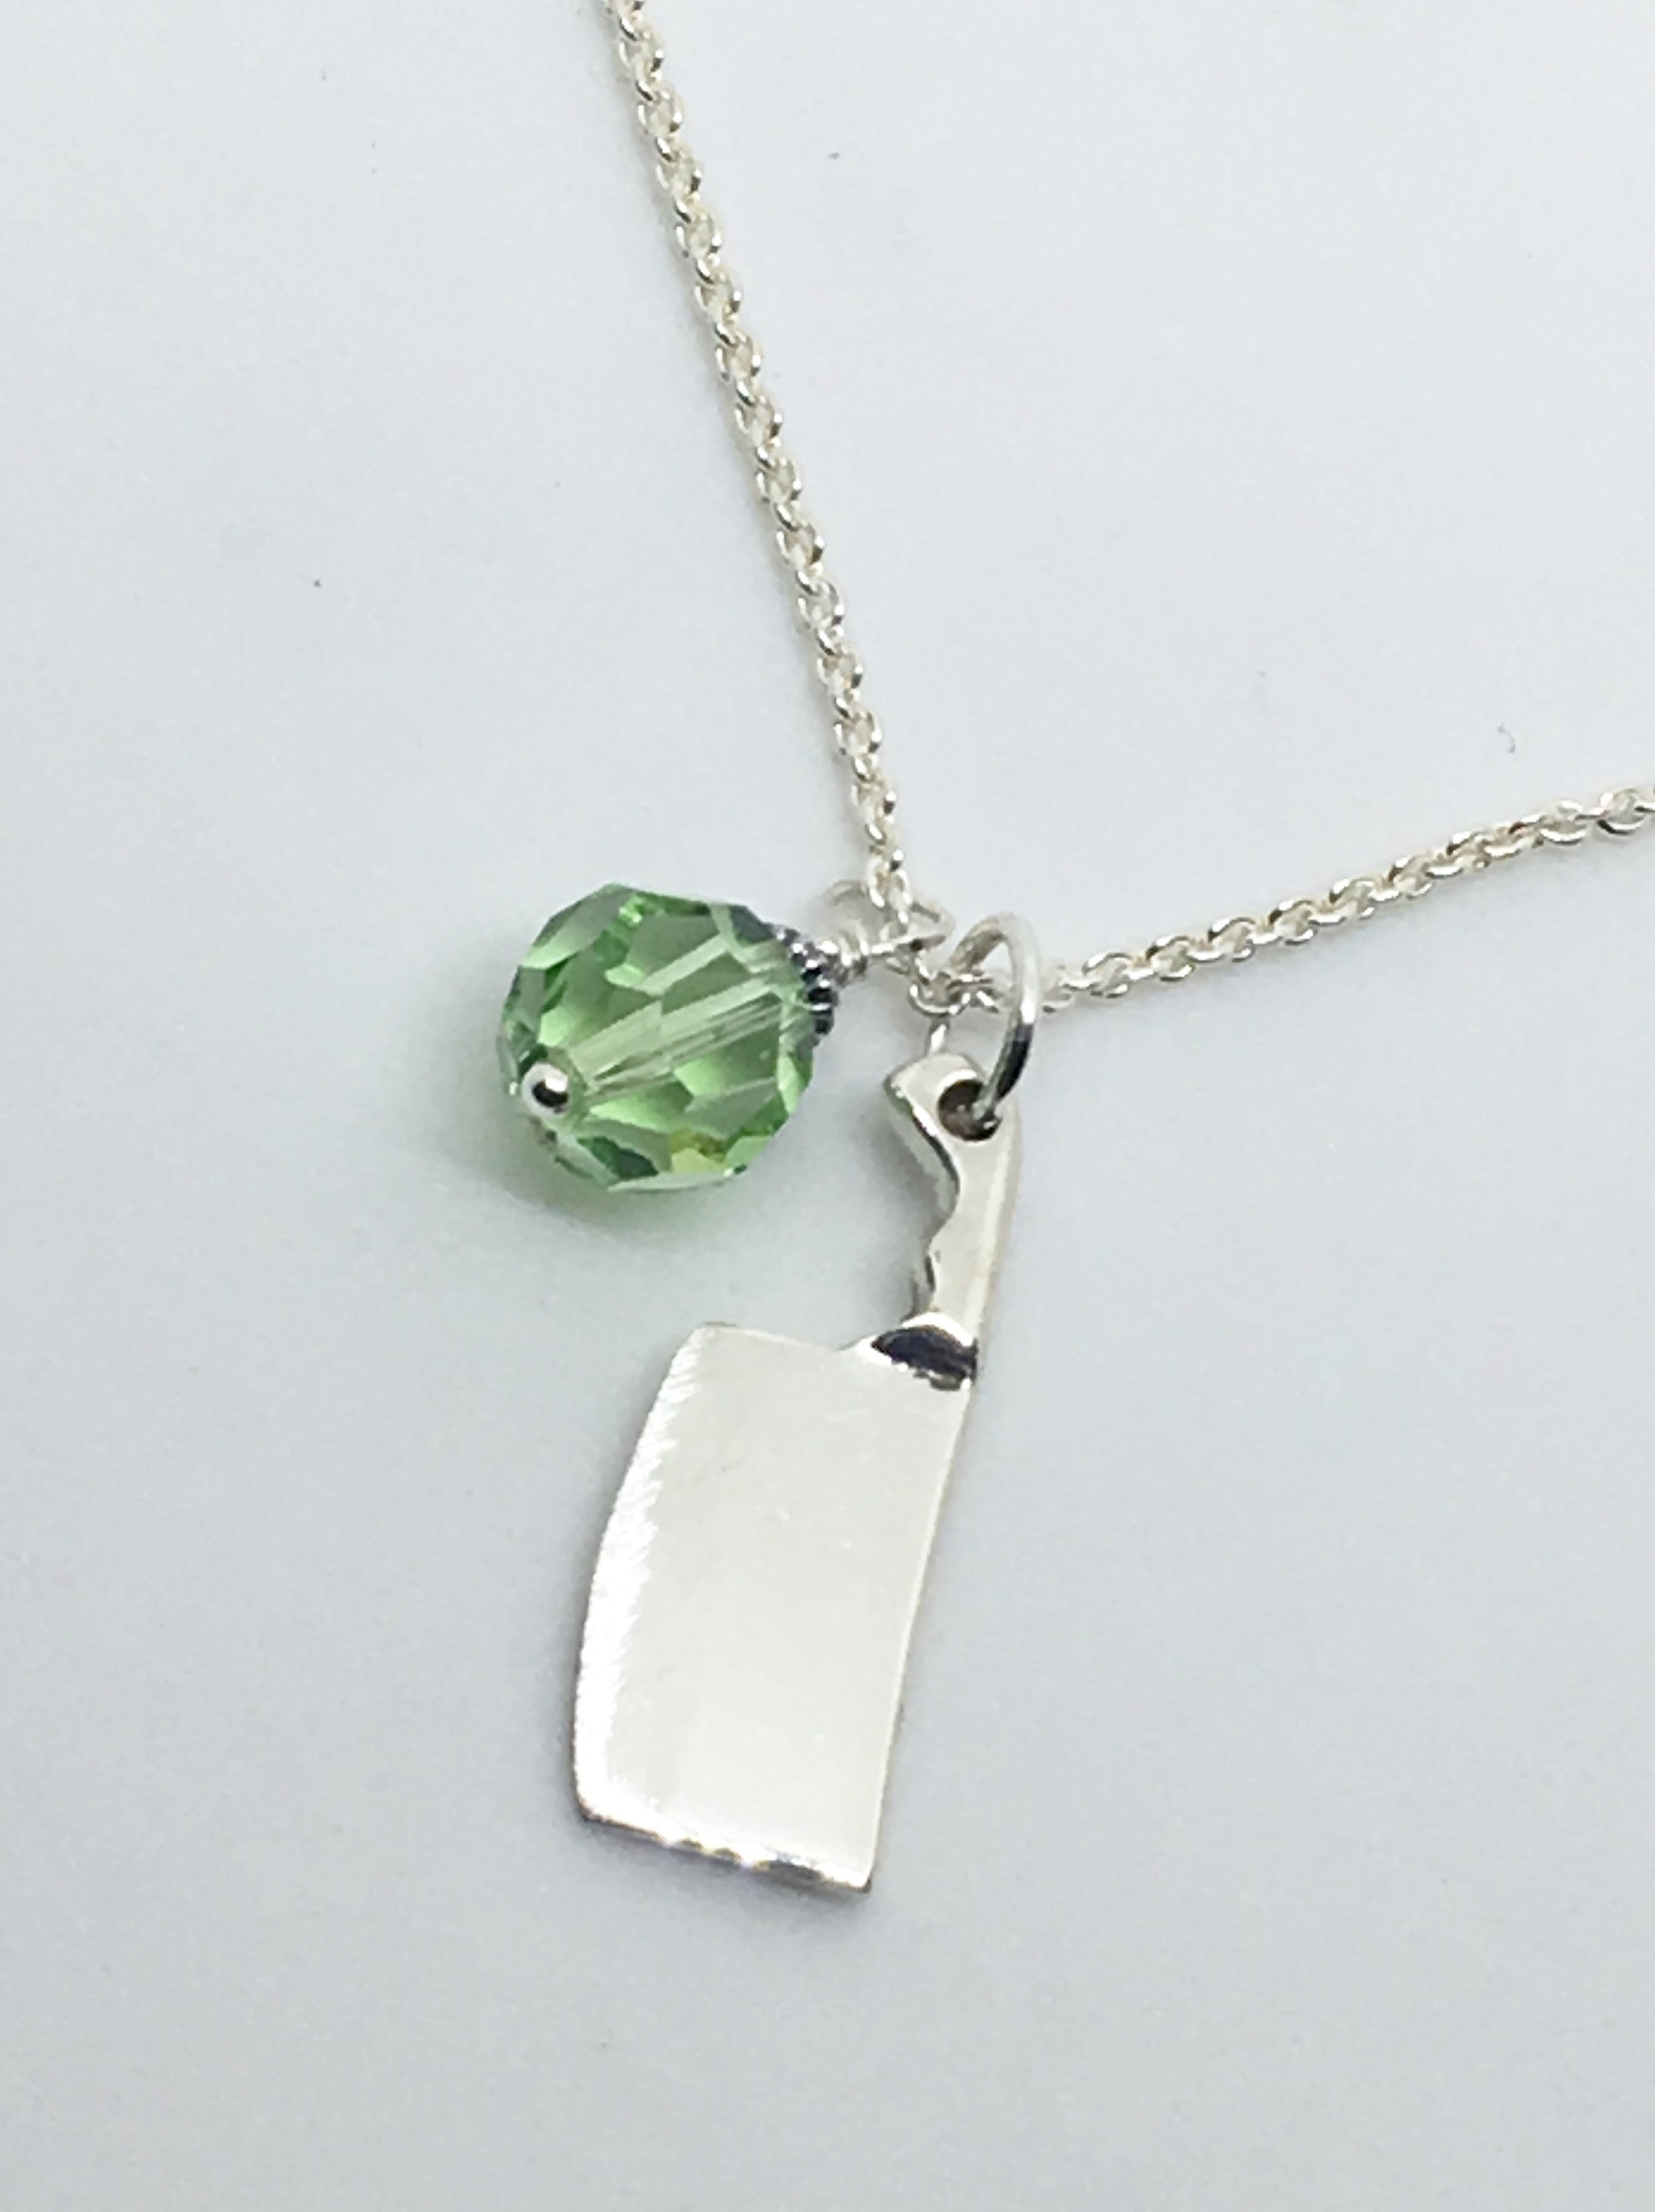 Chef's Cleaver Knife Pendant Necklace with Green Swarovski Crystal Charm